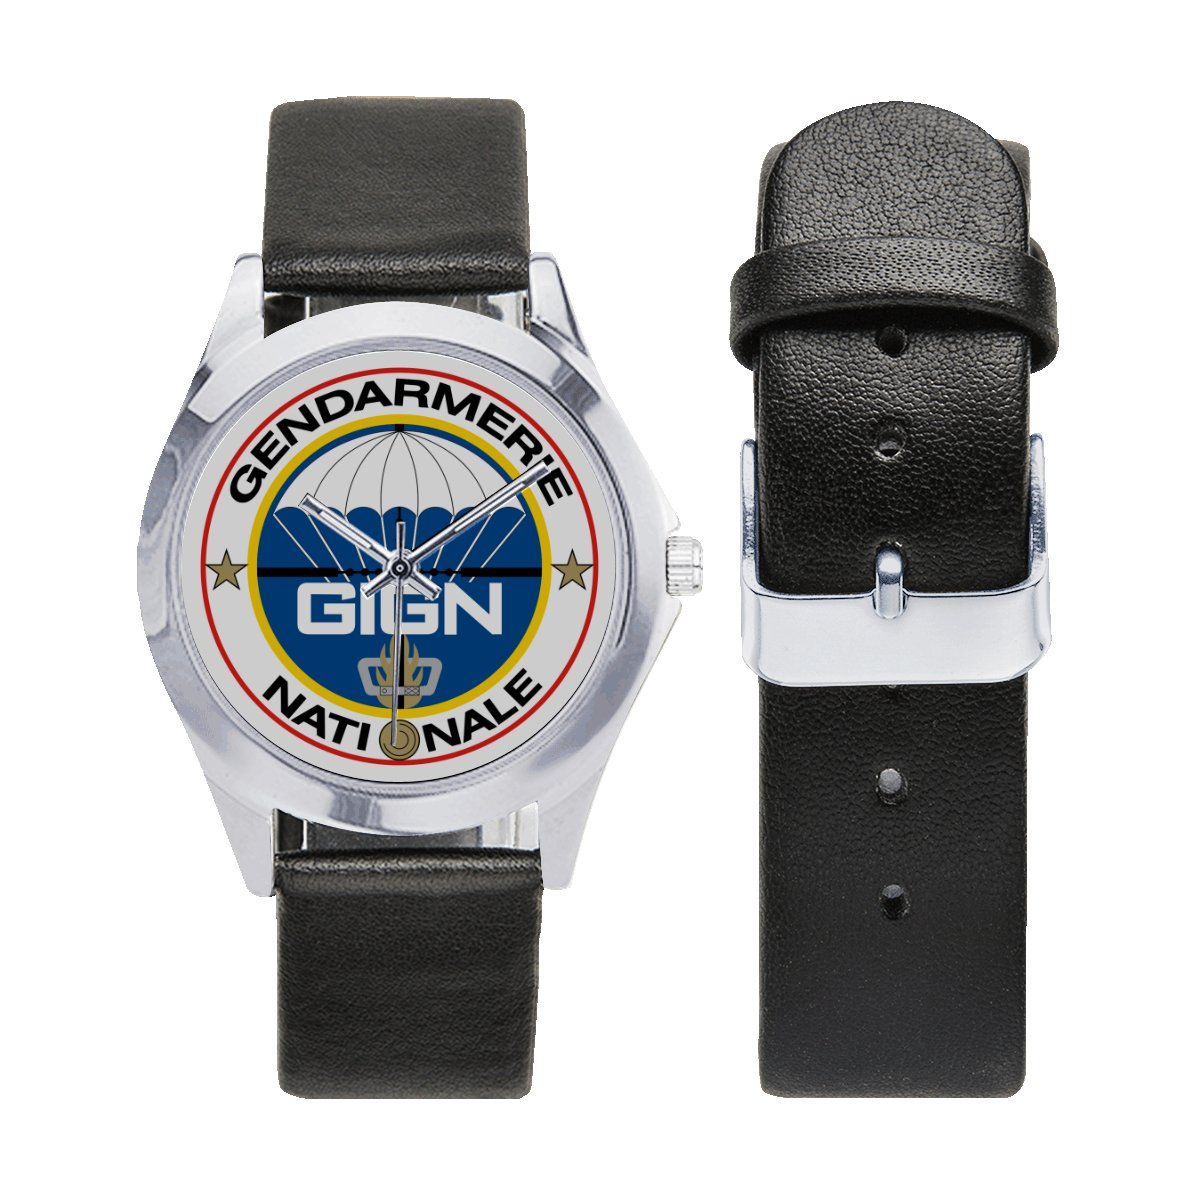 French GIGN (National Gendarmerie Intervention Group) Leather Strap Watch a perfect accessory